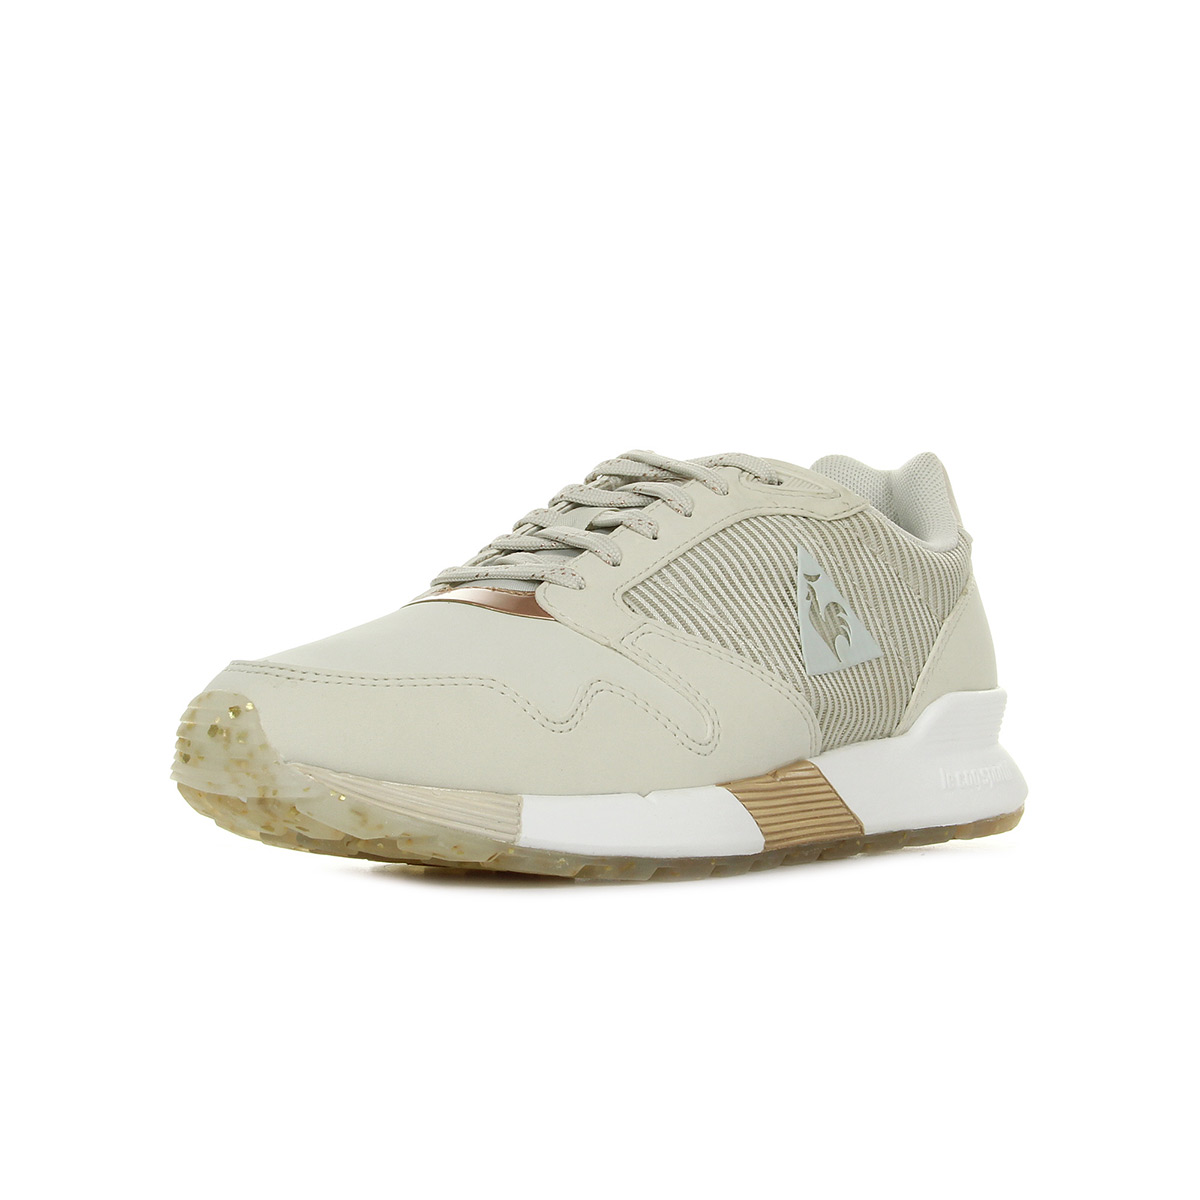 Chaussures Baskets Le Coq Sportif femme Omega X W Stripped Sock Sparkly Turtle